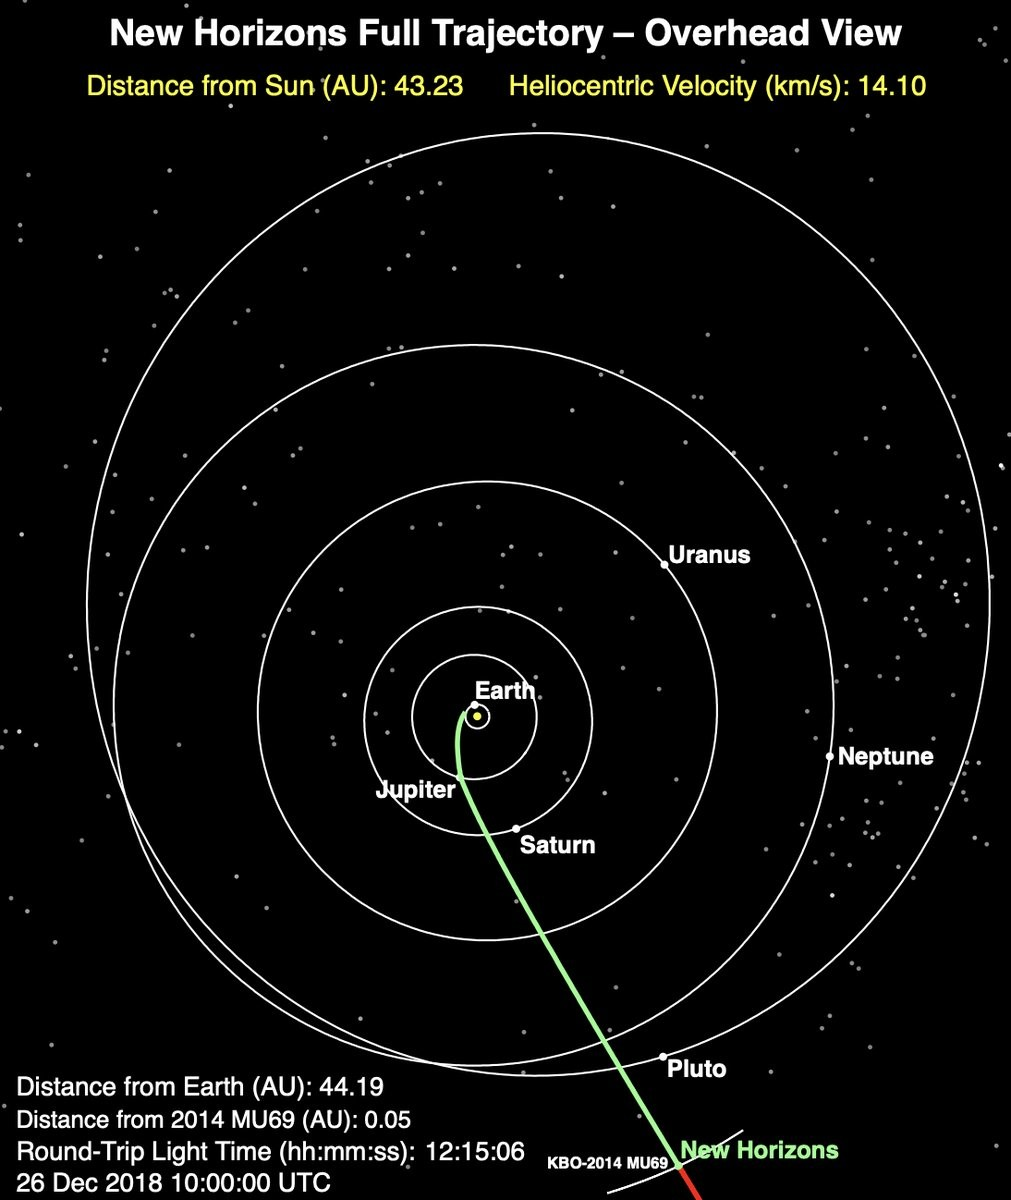 New Horizons Will Make The Most Distant Flyby In The History